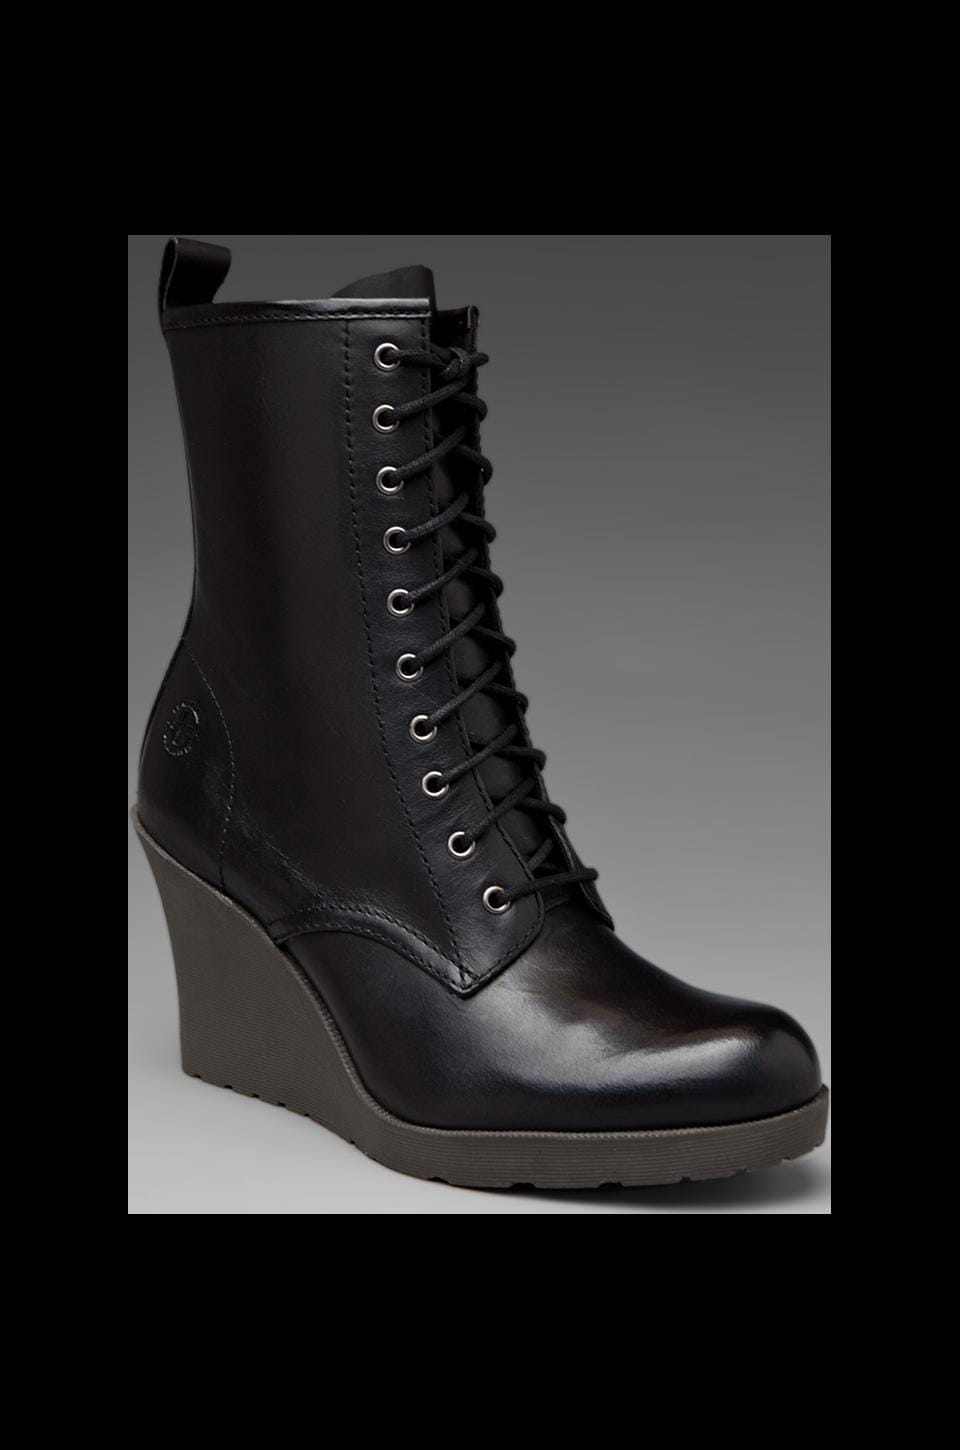 Dr. Martens Marcie 10 Eye Zip Boot in Black